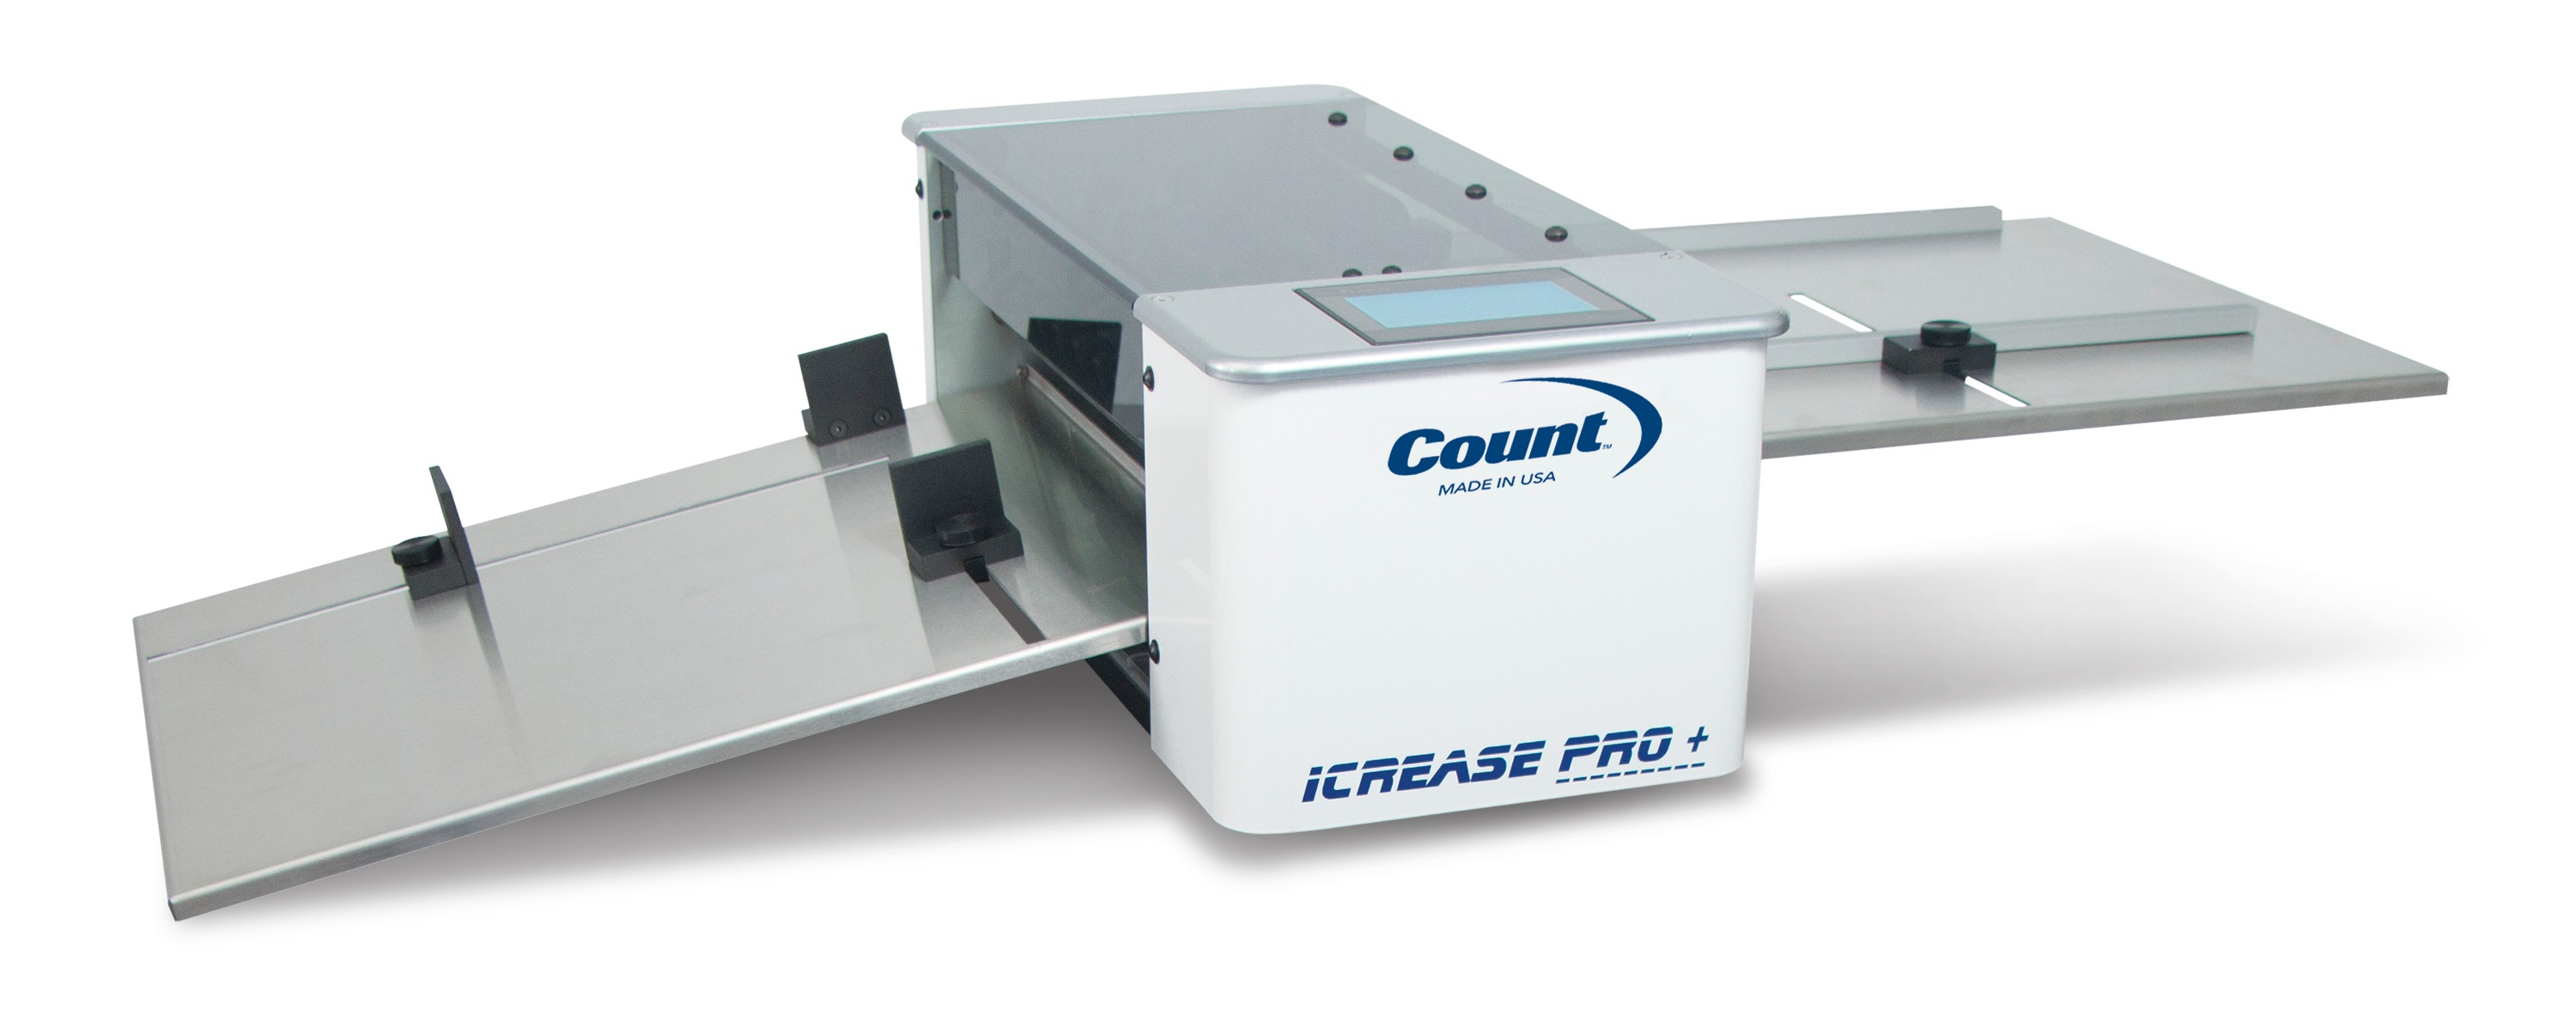 COUNT iCrease Pro + Machine